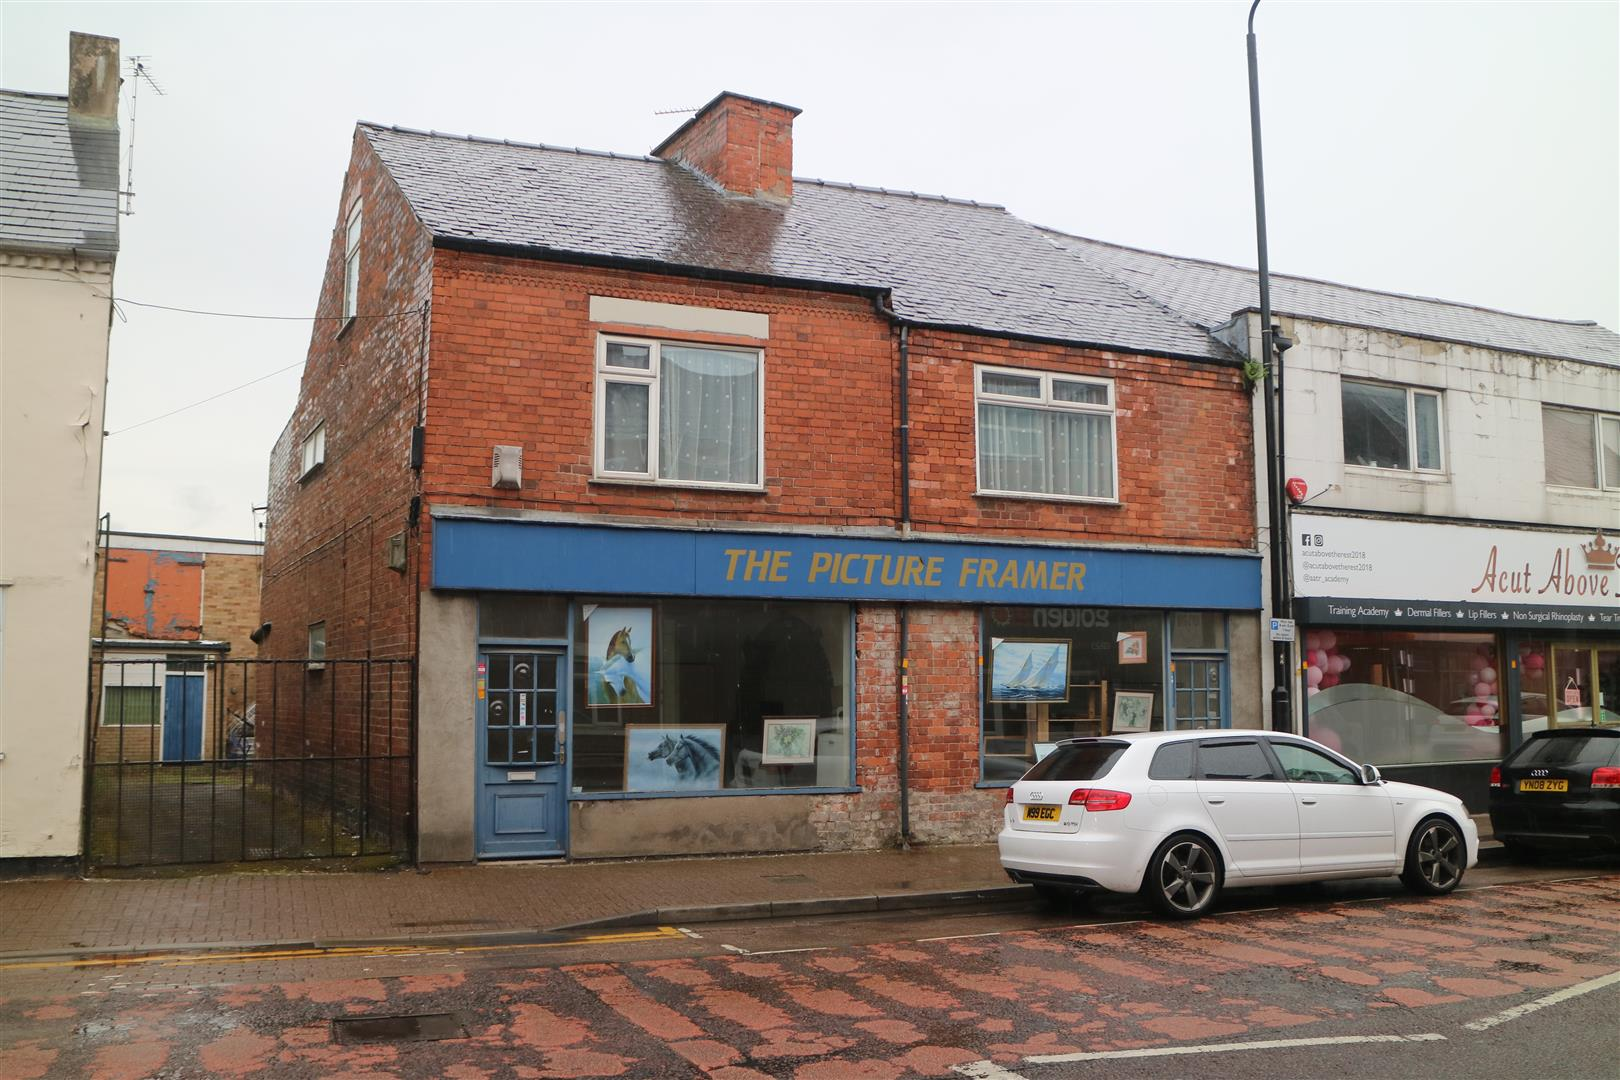 Outram Street Sutton-In-Ashfield NG17 4FT